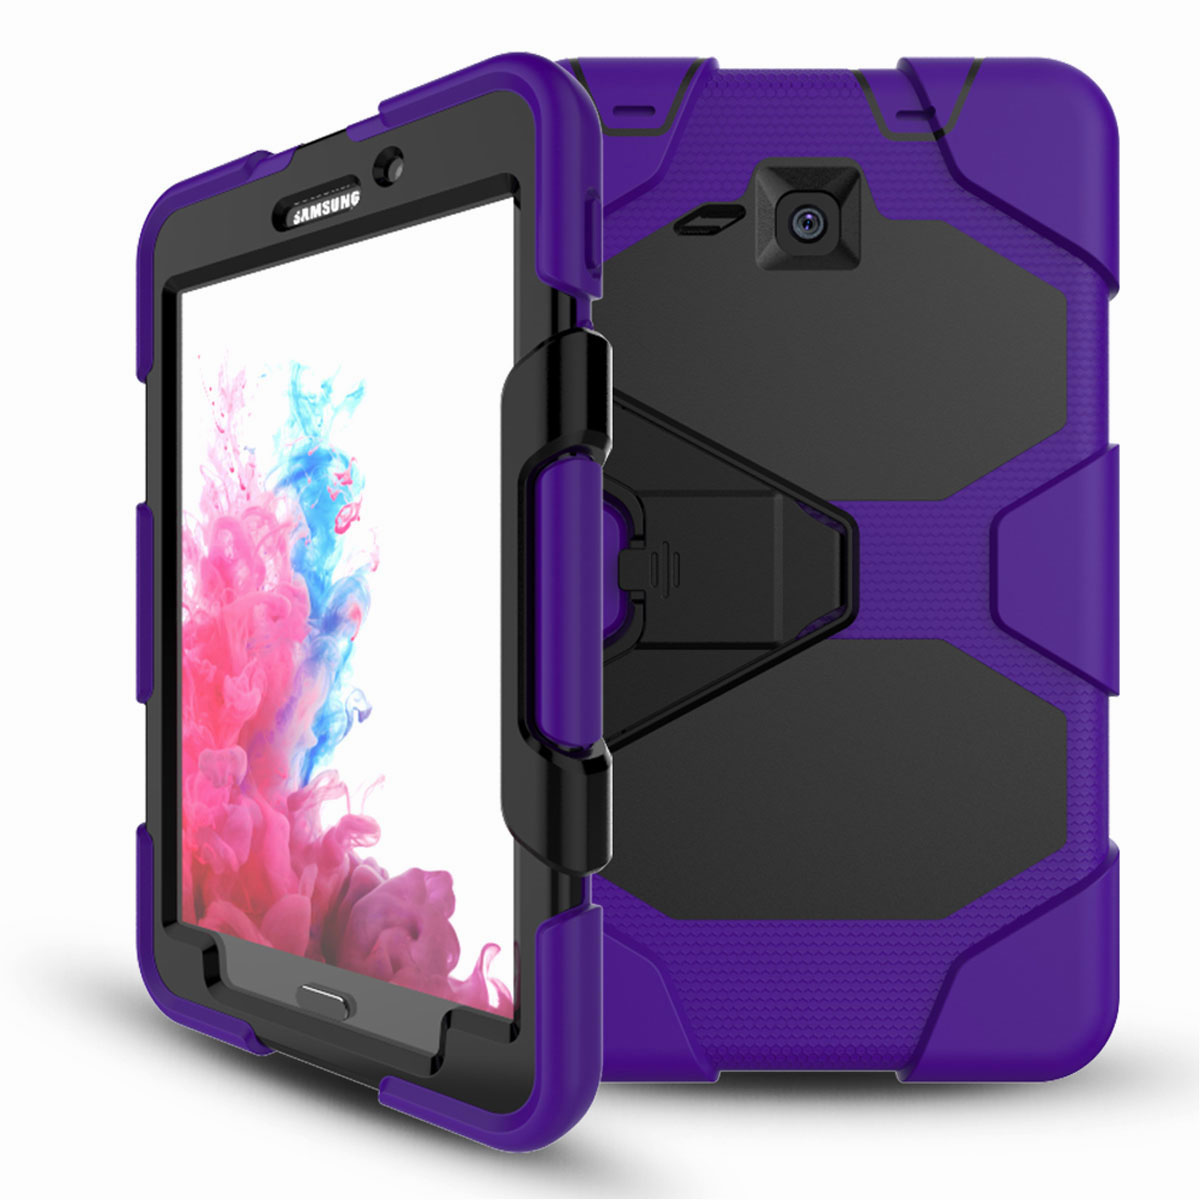 Tablet-Case-For-Samsung-Galaxy-Tab-A-E-S2-Screen-Protective-Hybrid-Rubber-Cover thumbnail 21